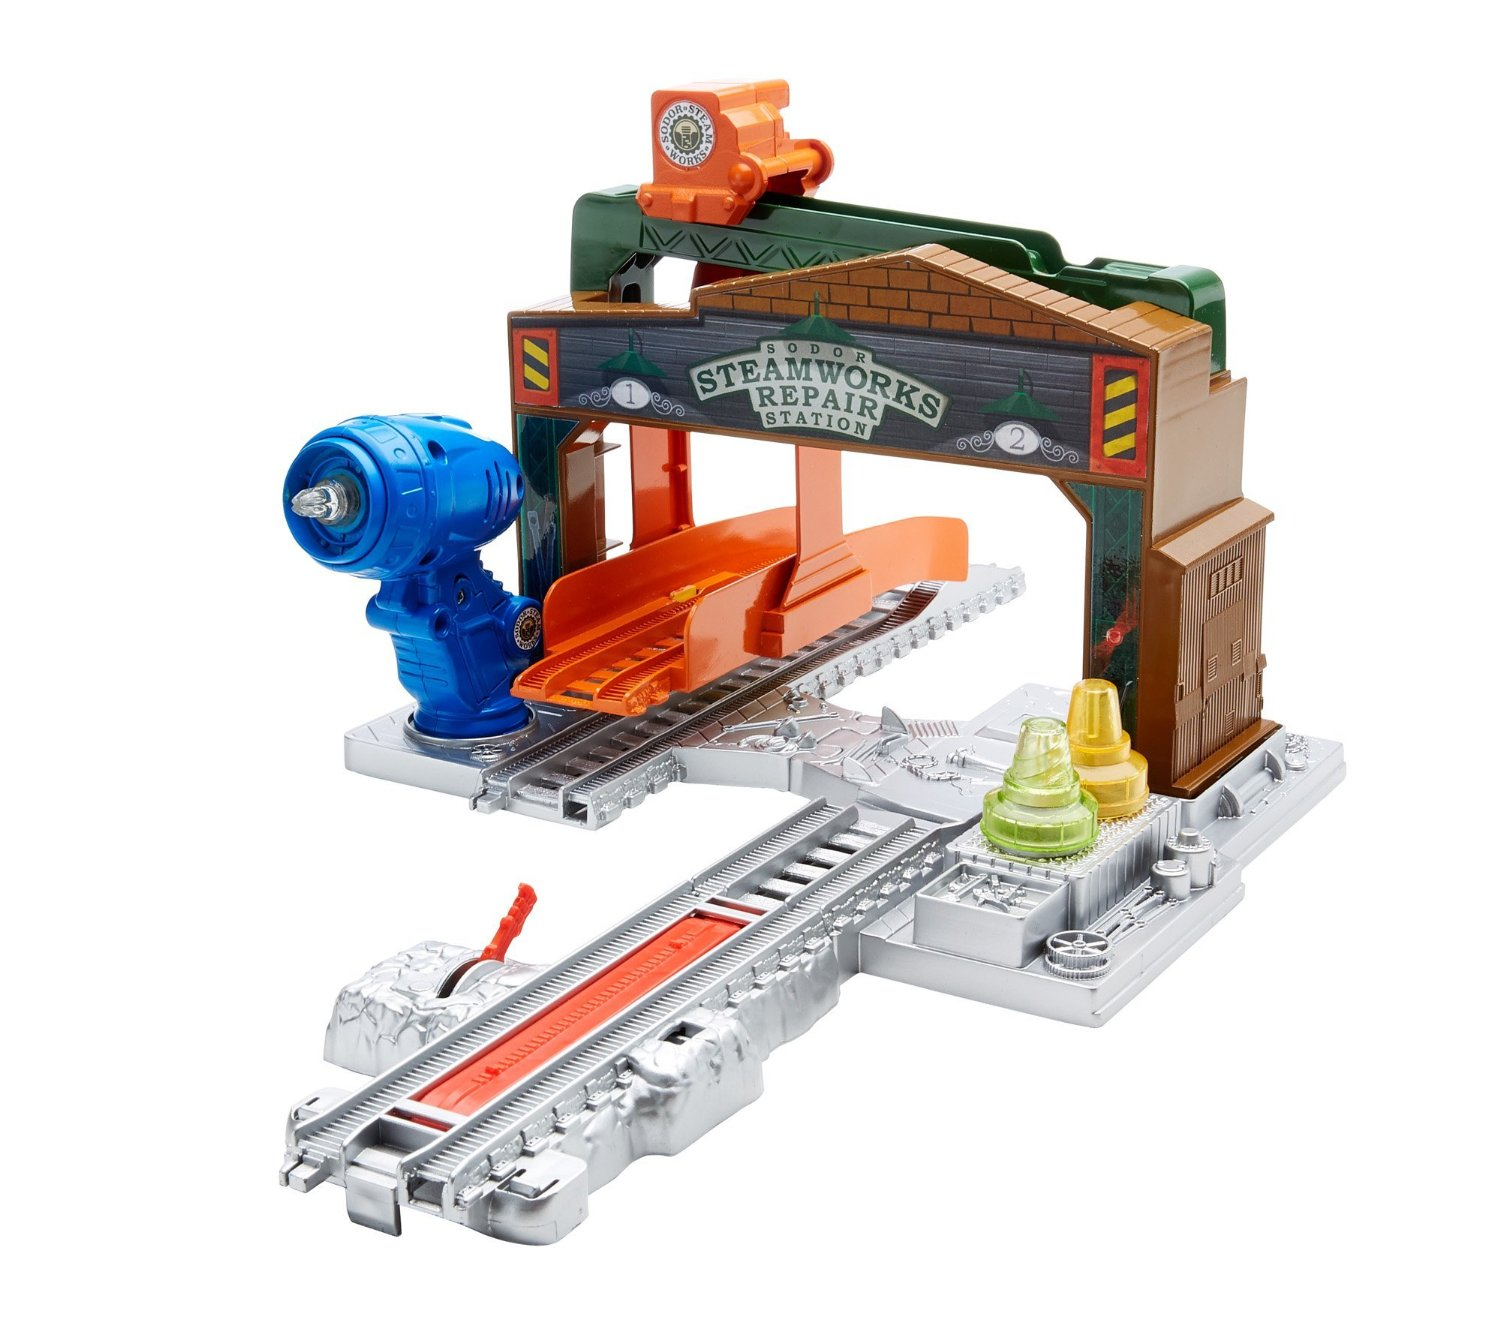 Steamworks Repair Station Thomas And Friends Trackmaster